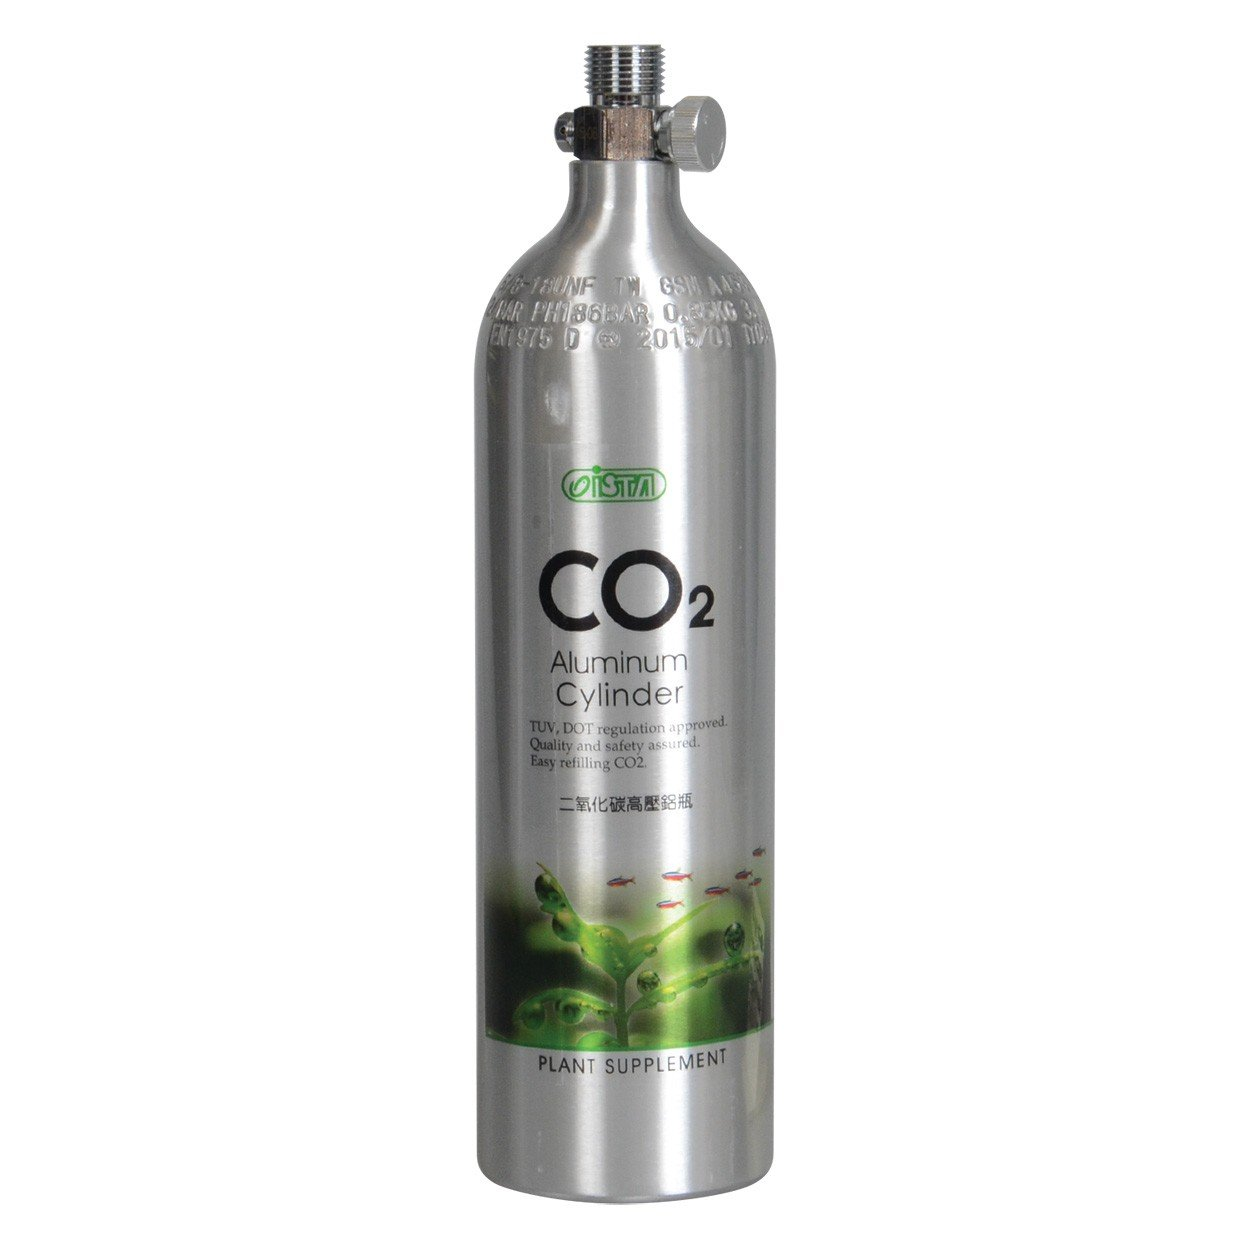 Ista Aluminum Co2 Cylinder 1L/0.85kg (Face Up)